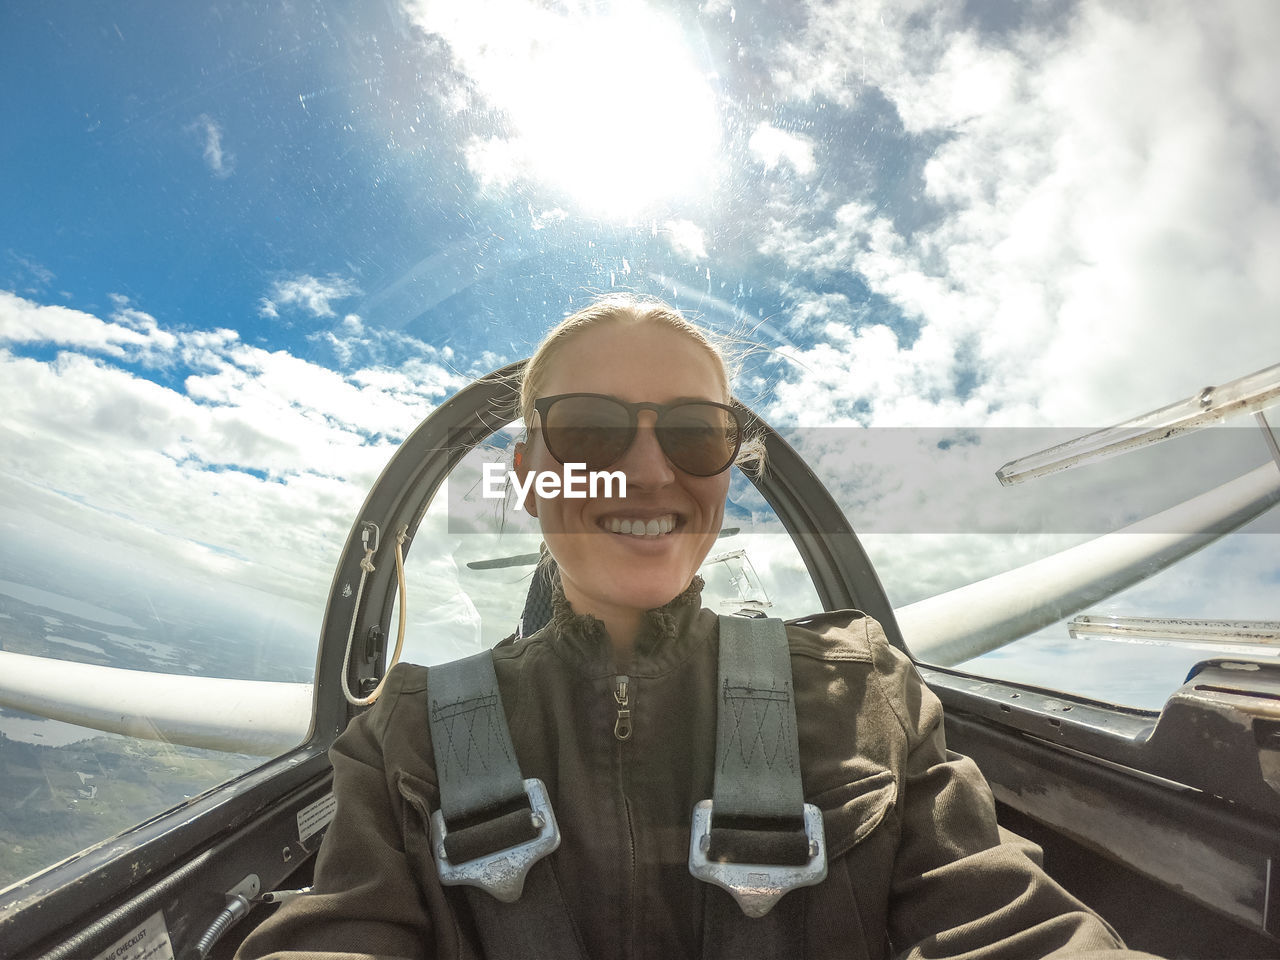 transportation, smiling, glasses, mode of transportation, one person, portrait, sky, cloud - sky, looking at camera, adult, day, front view, women, car, travel, real people, sunglasses, lifestyles, nature, happiness, fashion, outdoors